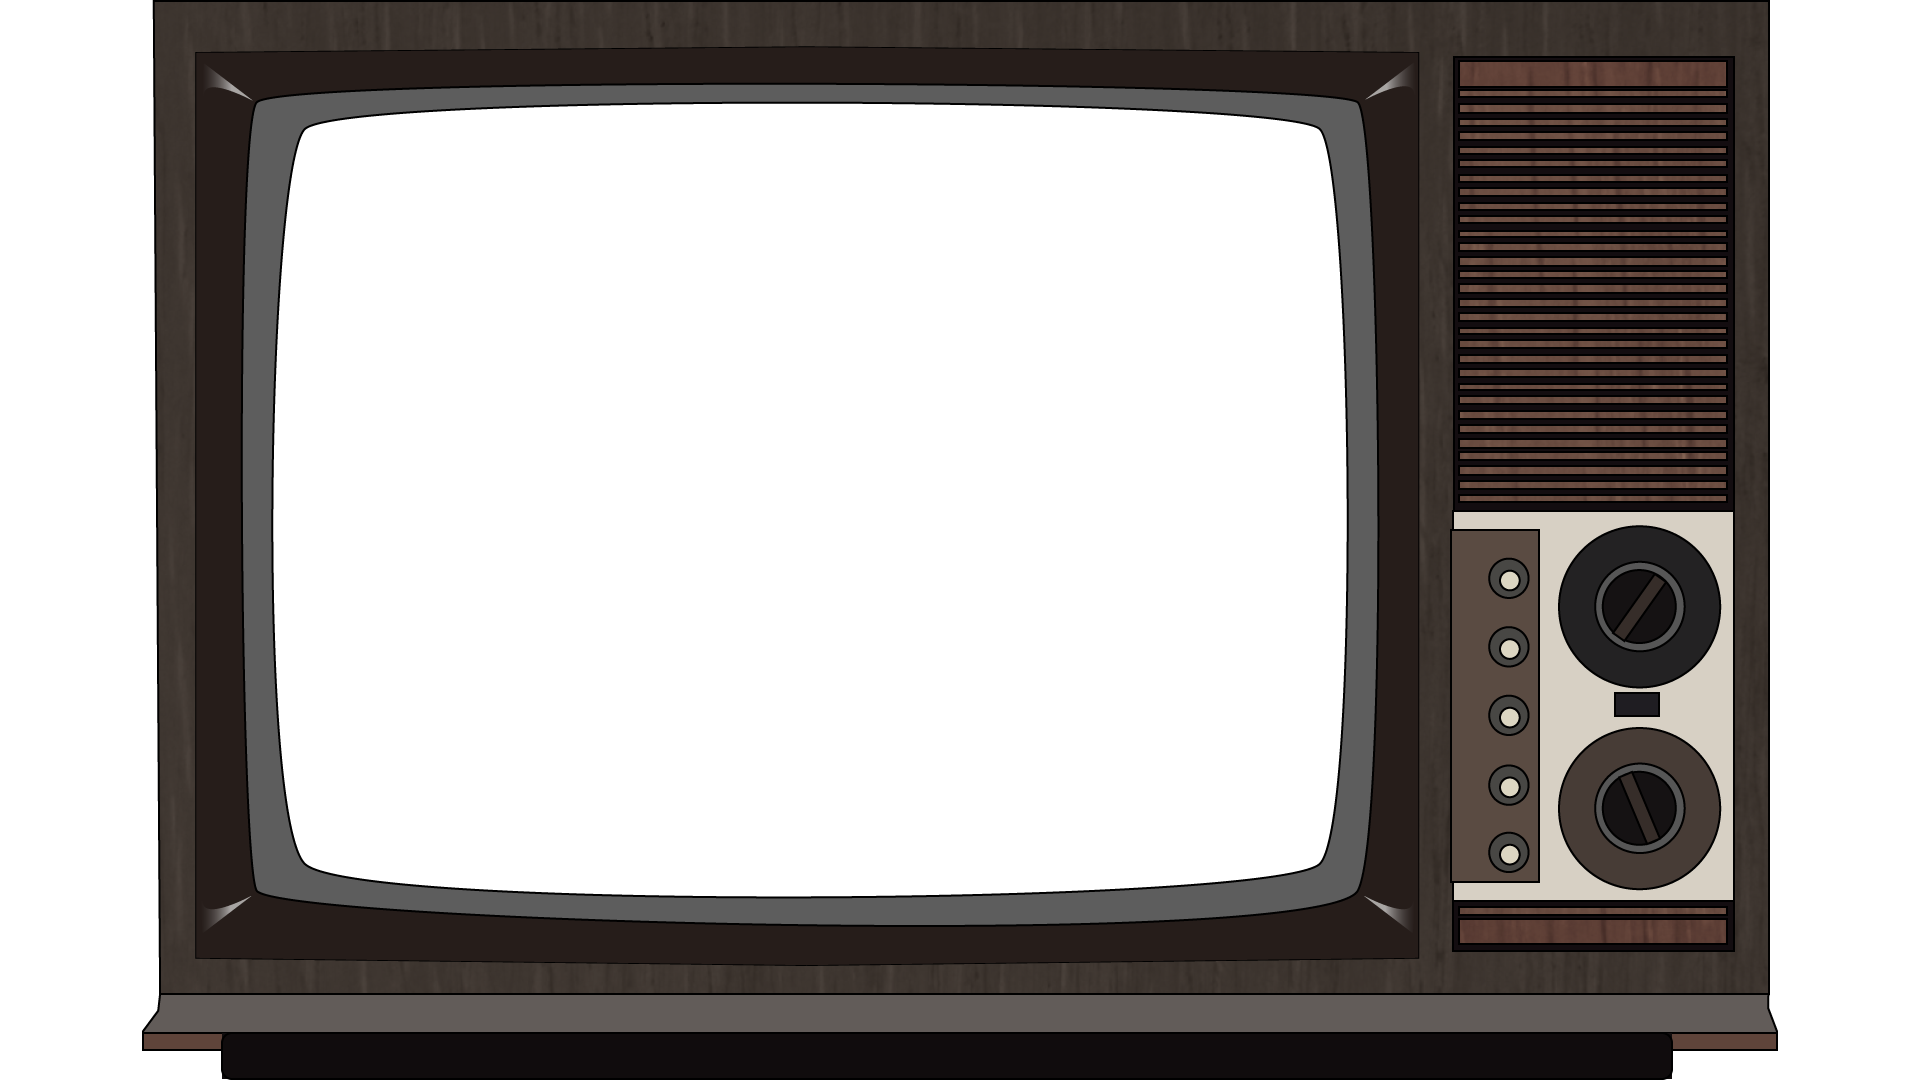 Television set png. Old image purepng free